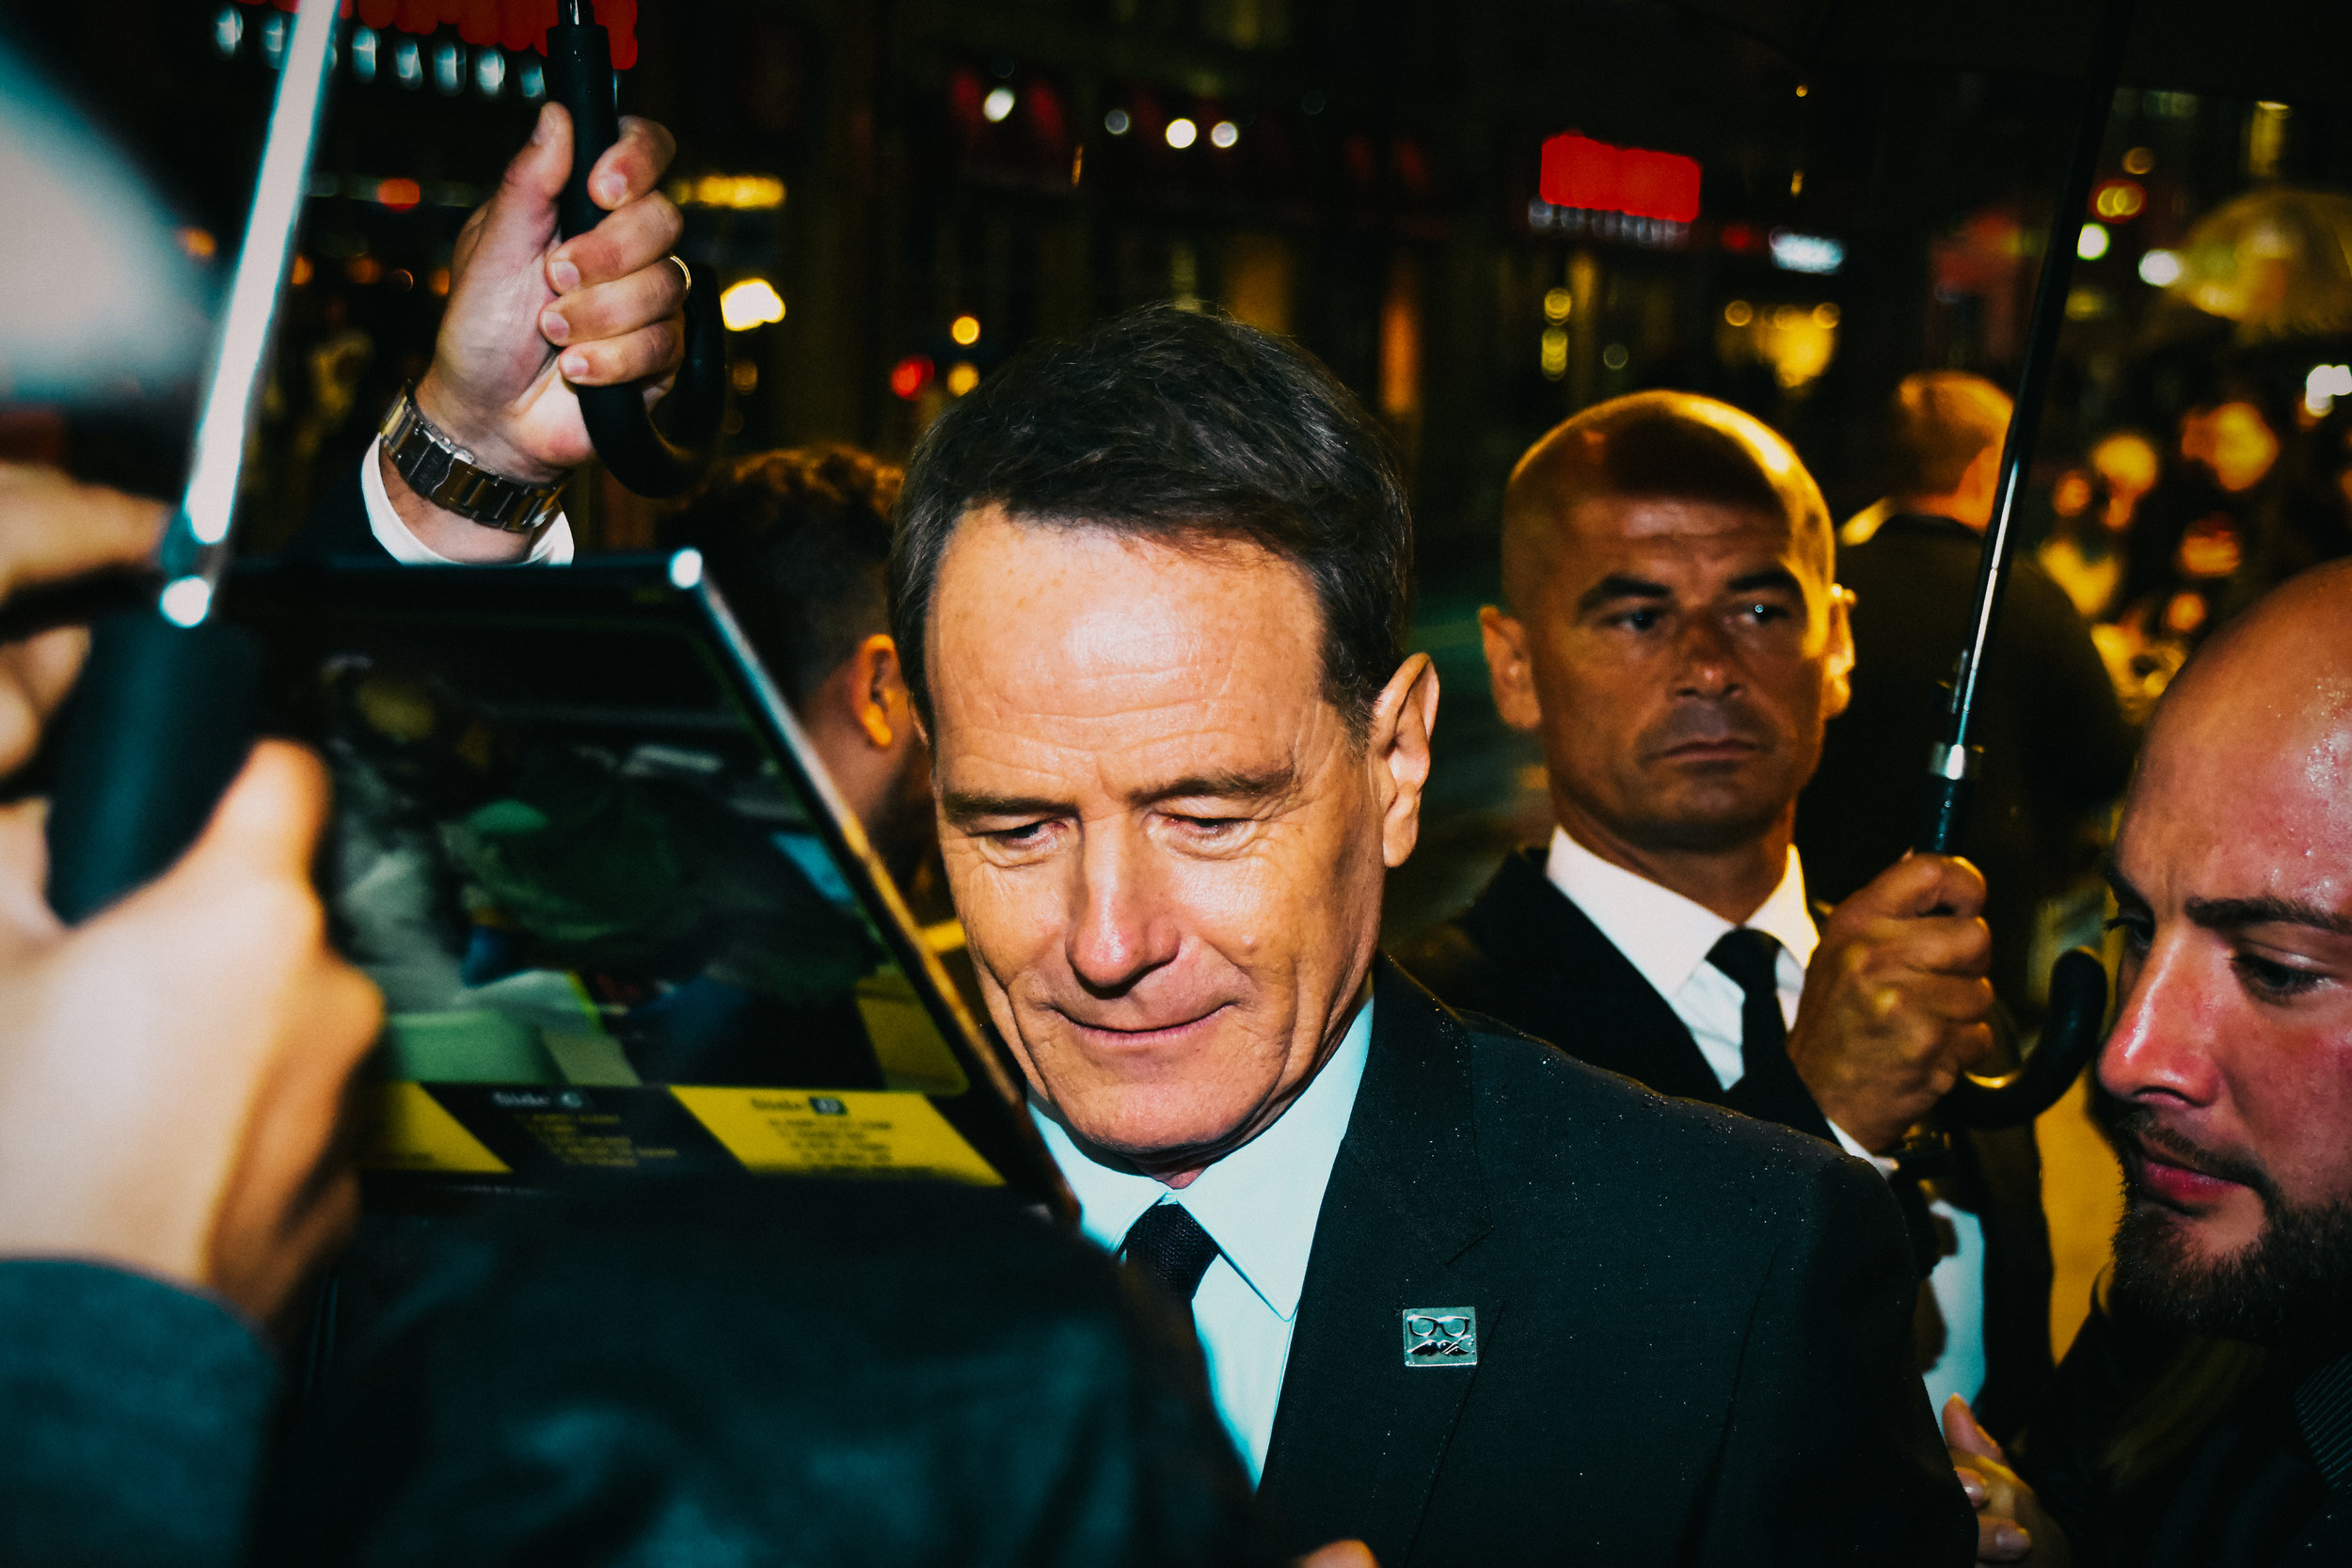 It was an absolute zoo for Bryan Cranston!